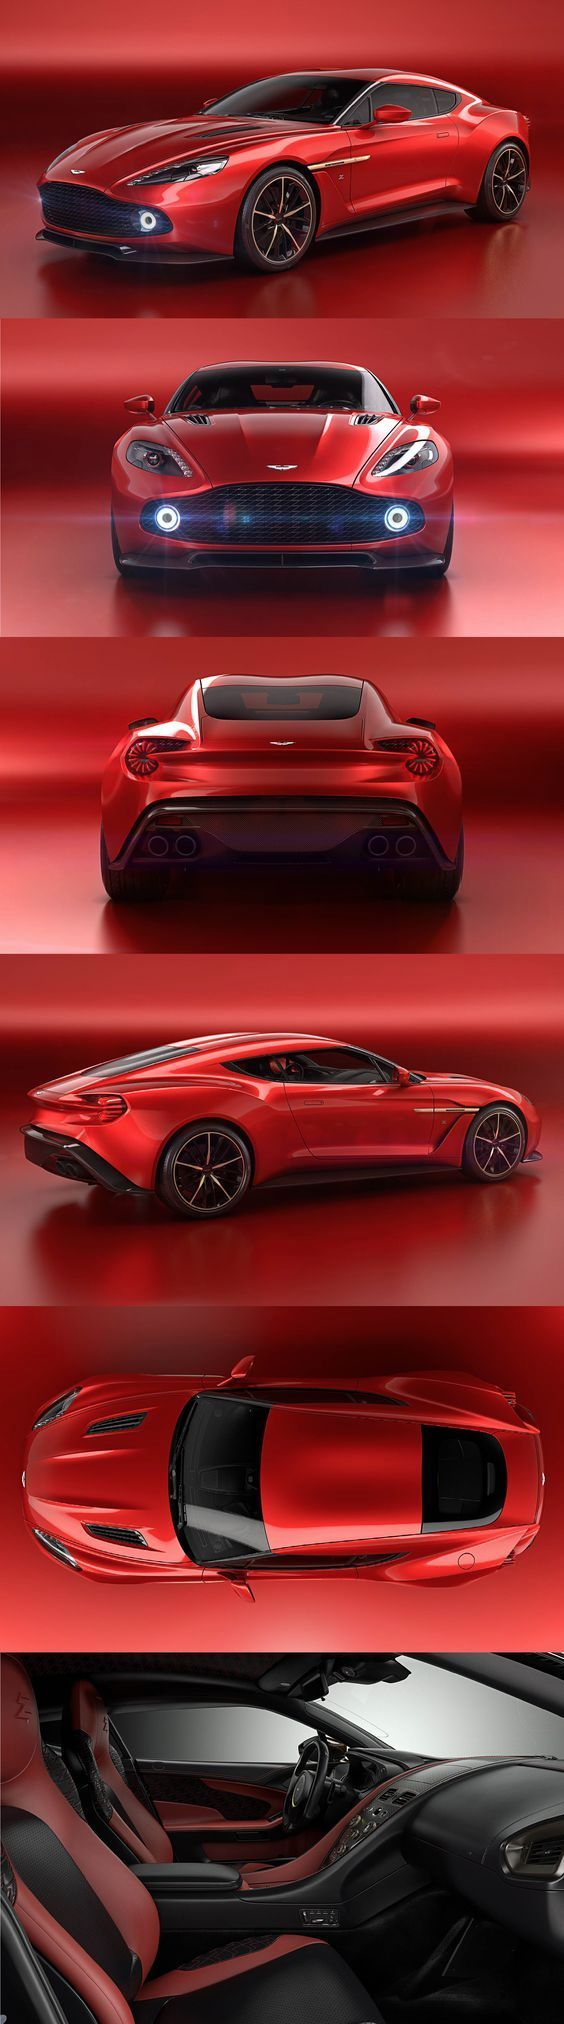 """MUST SEE """" 2017 Aston Martin Vanquish Zagato"""", 2017 Concept Car Photos and Images, 2017 Cars"""